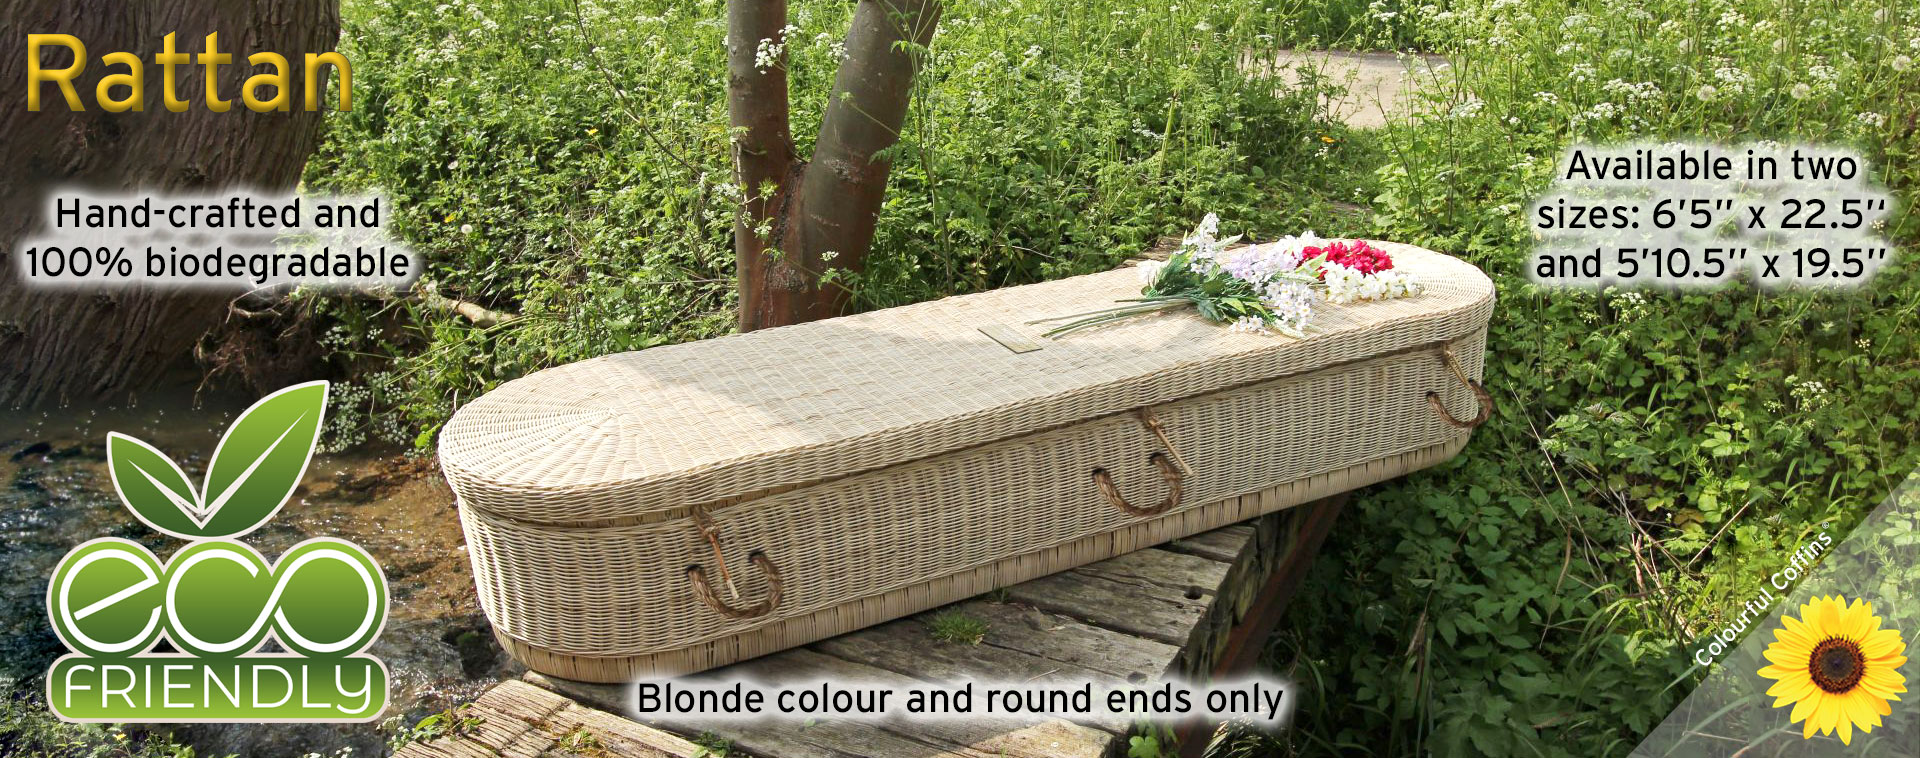 Blonde Rattans by Colourful Coffins in two sizes 100% biodegradable eco-friendly